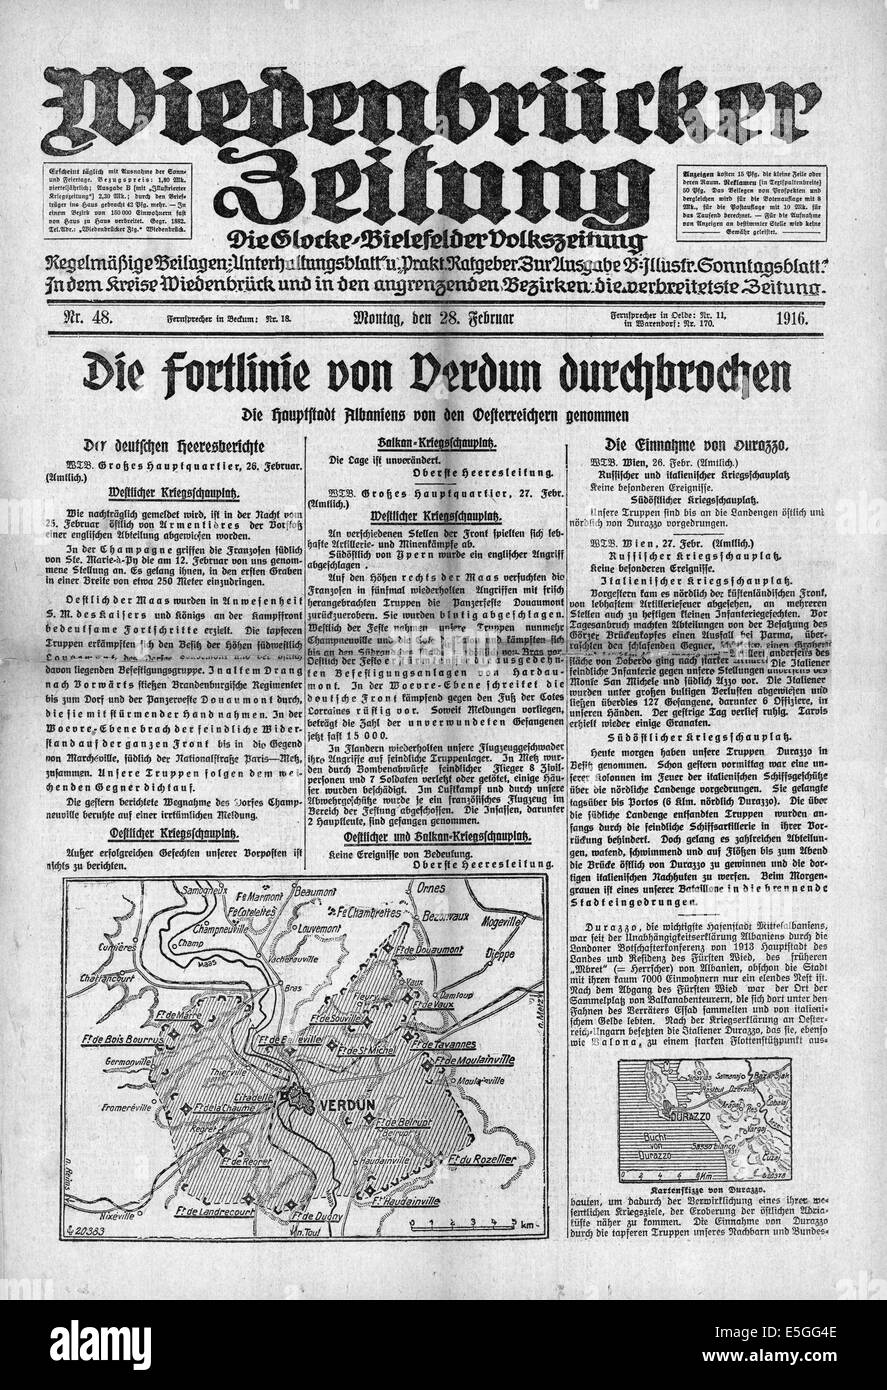 Wiedenbrucke Zeitung (Germany) front page reporting battle of Verdun between the German and French armies - Stock Image